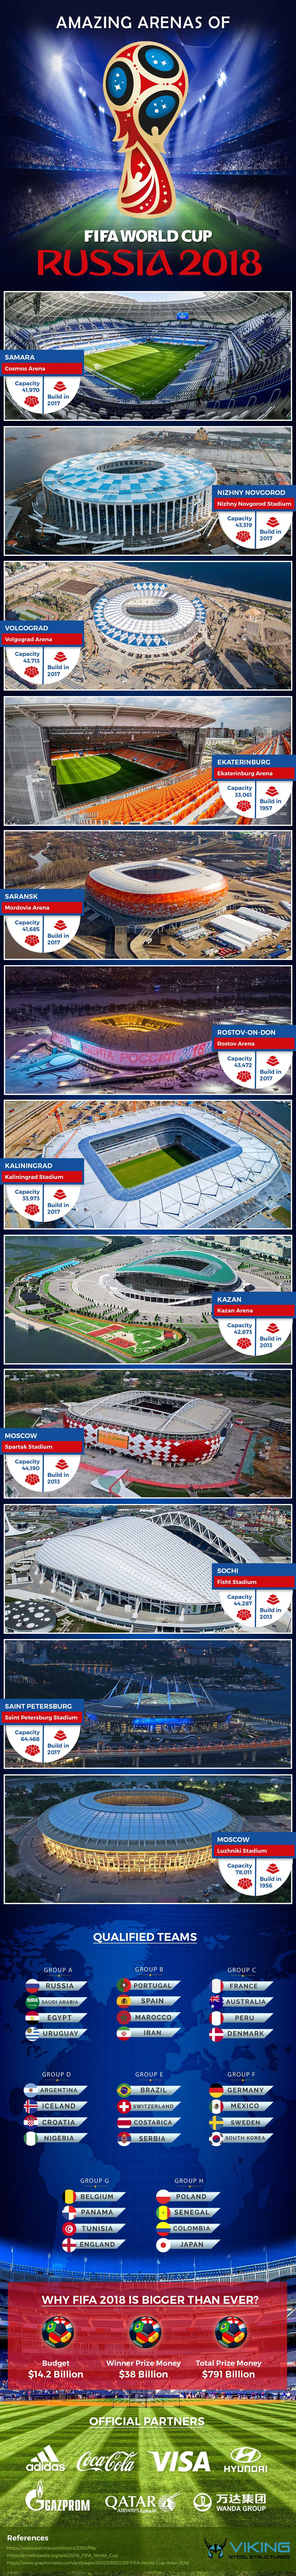 amazing-arena-fifa-world-cup-2018